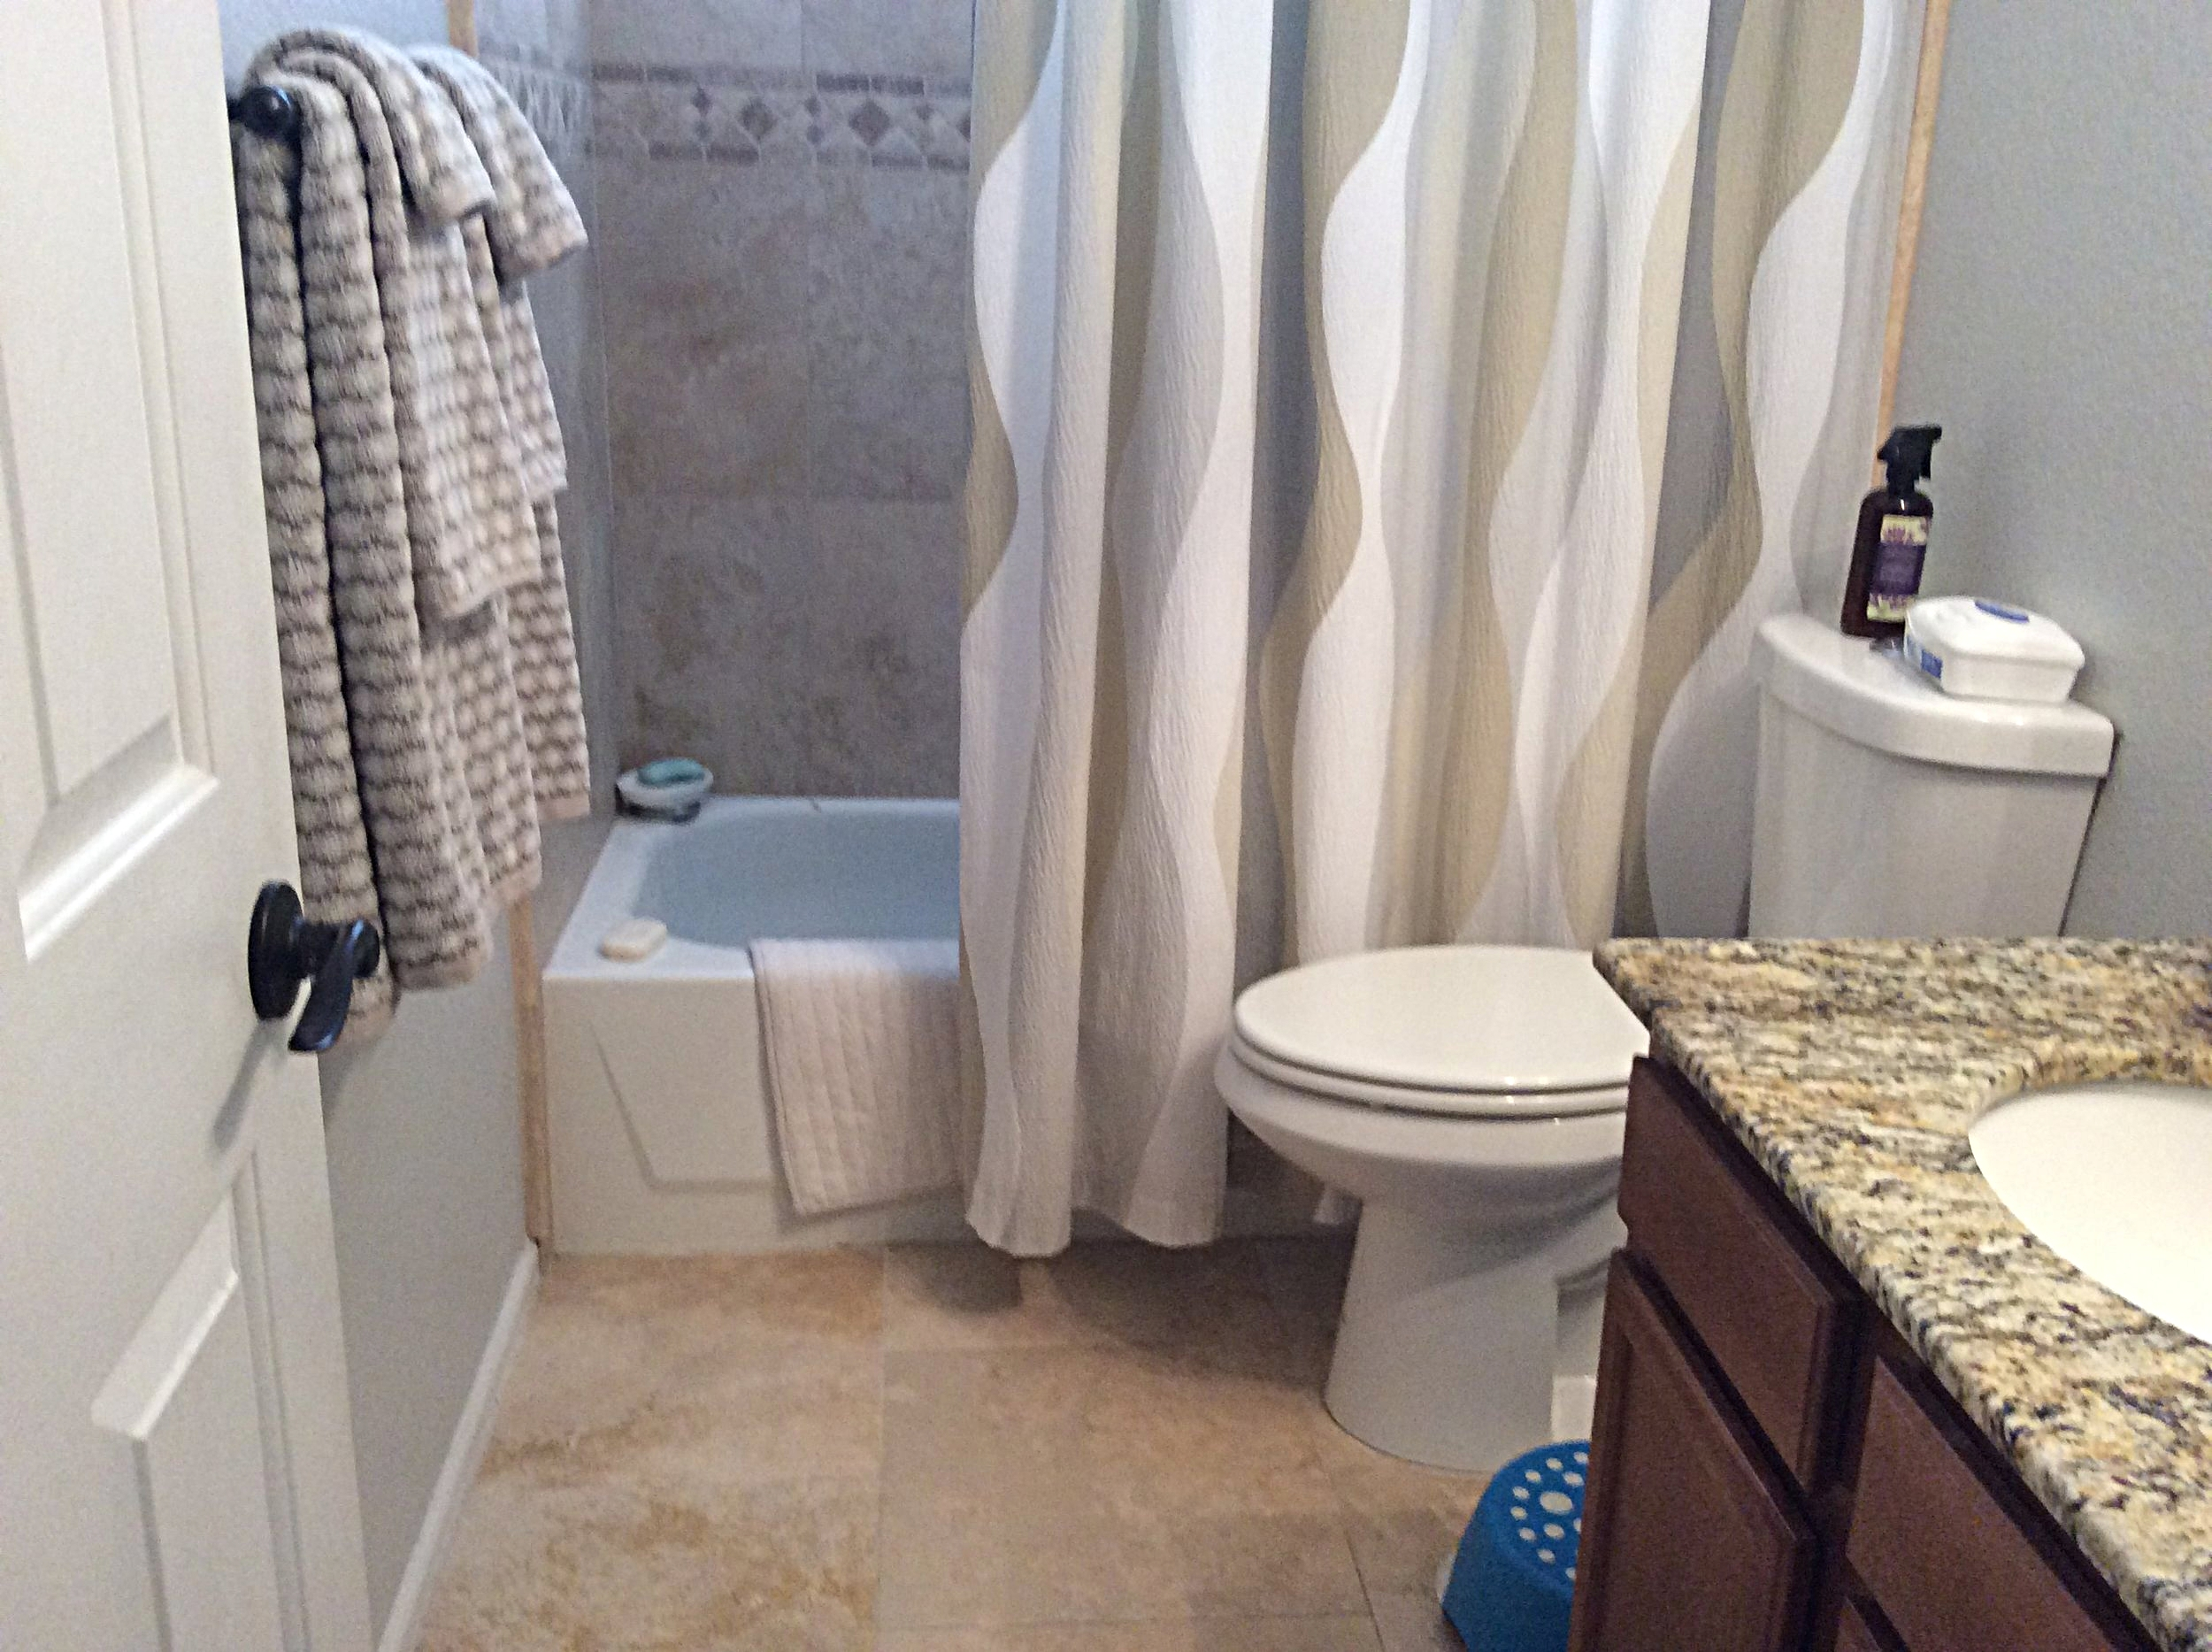 Travertine with gray/blue walls and shower curtain